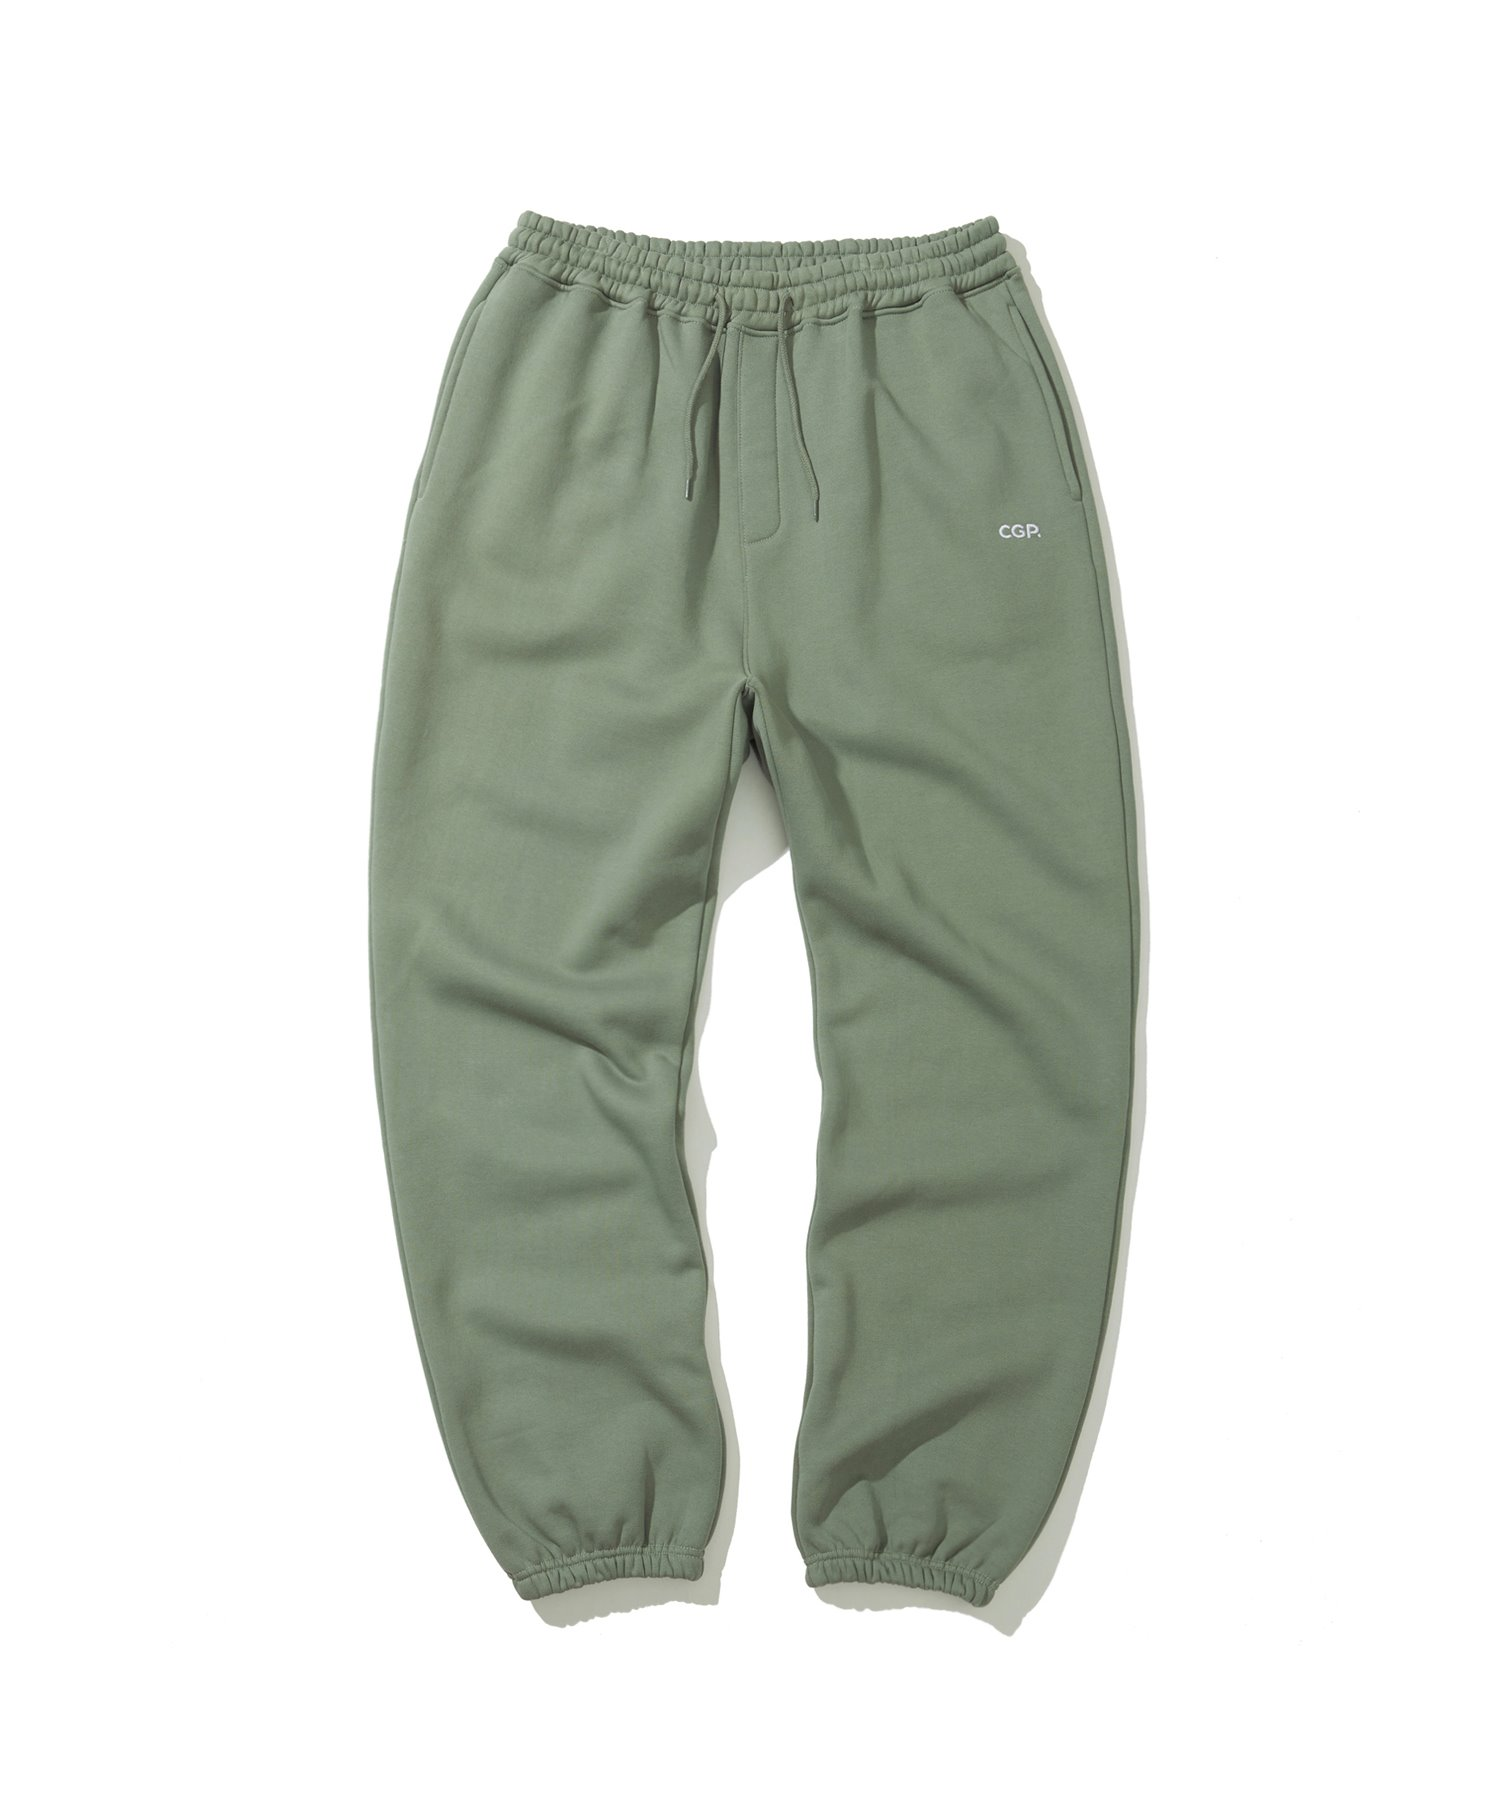 CGP BASIC TRAINING PANTS - KK